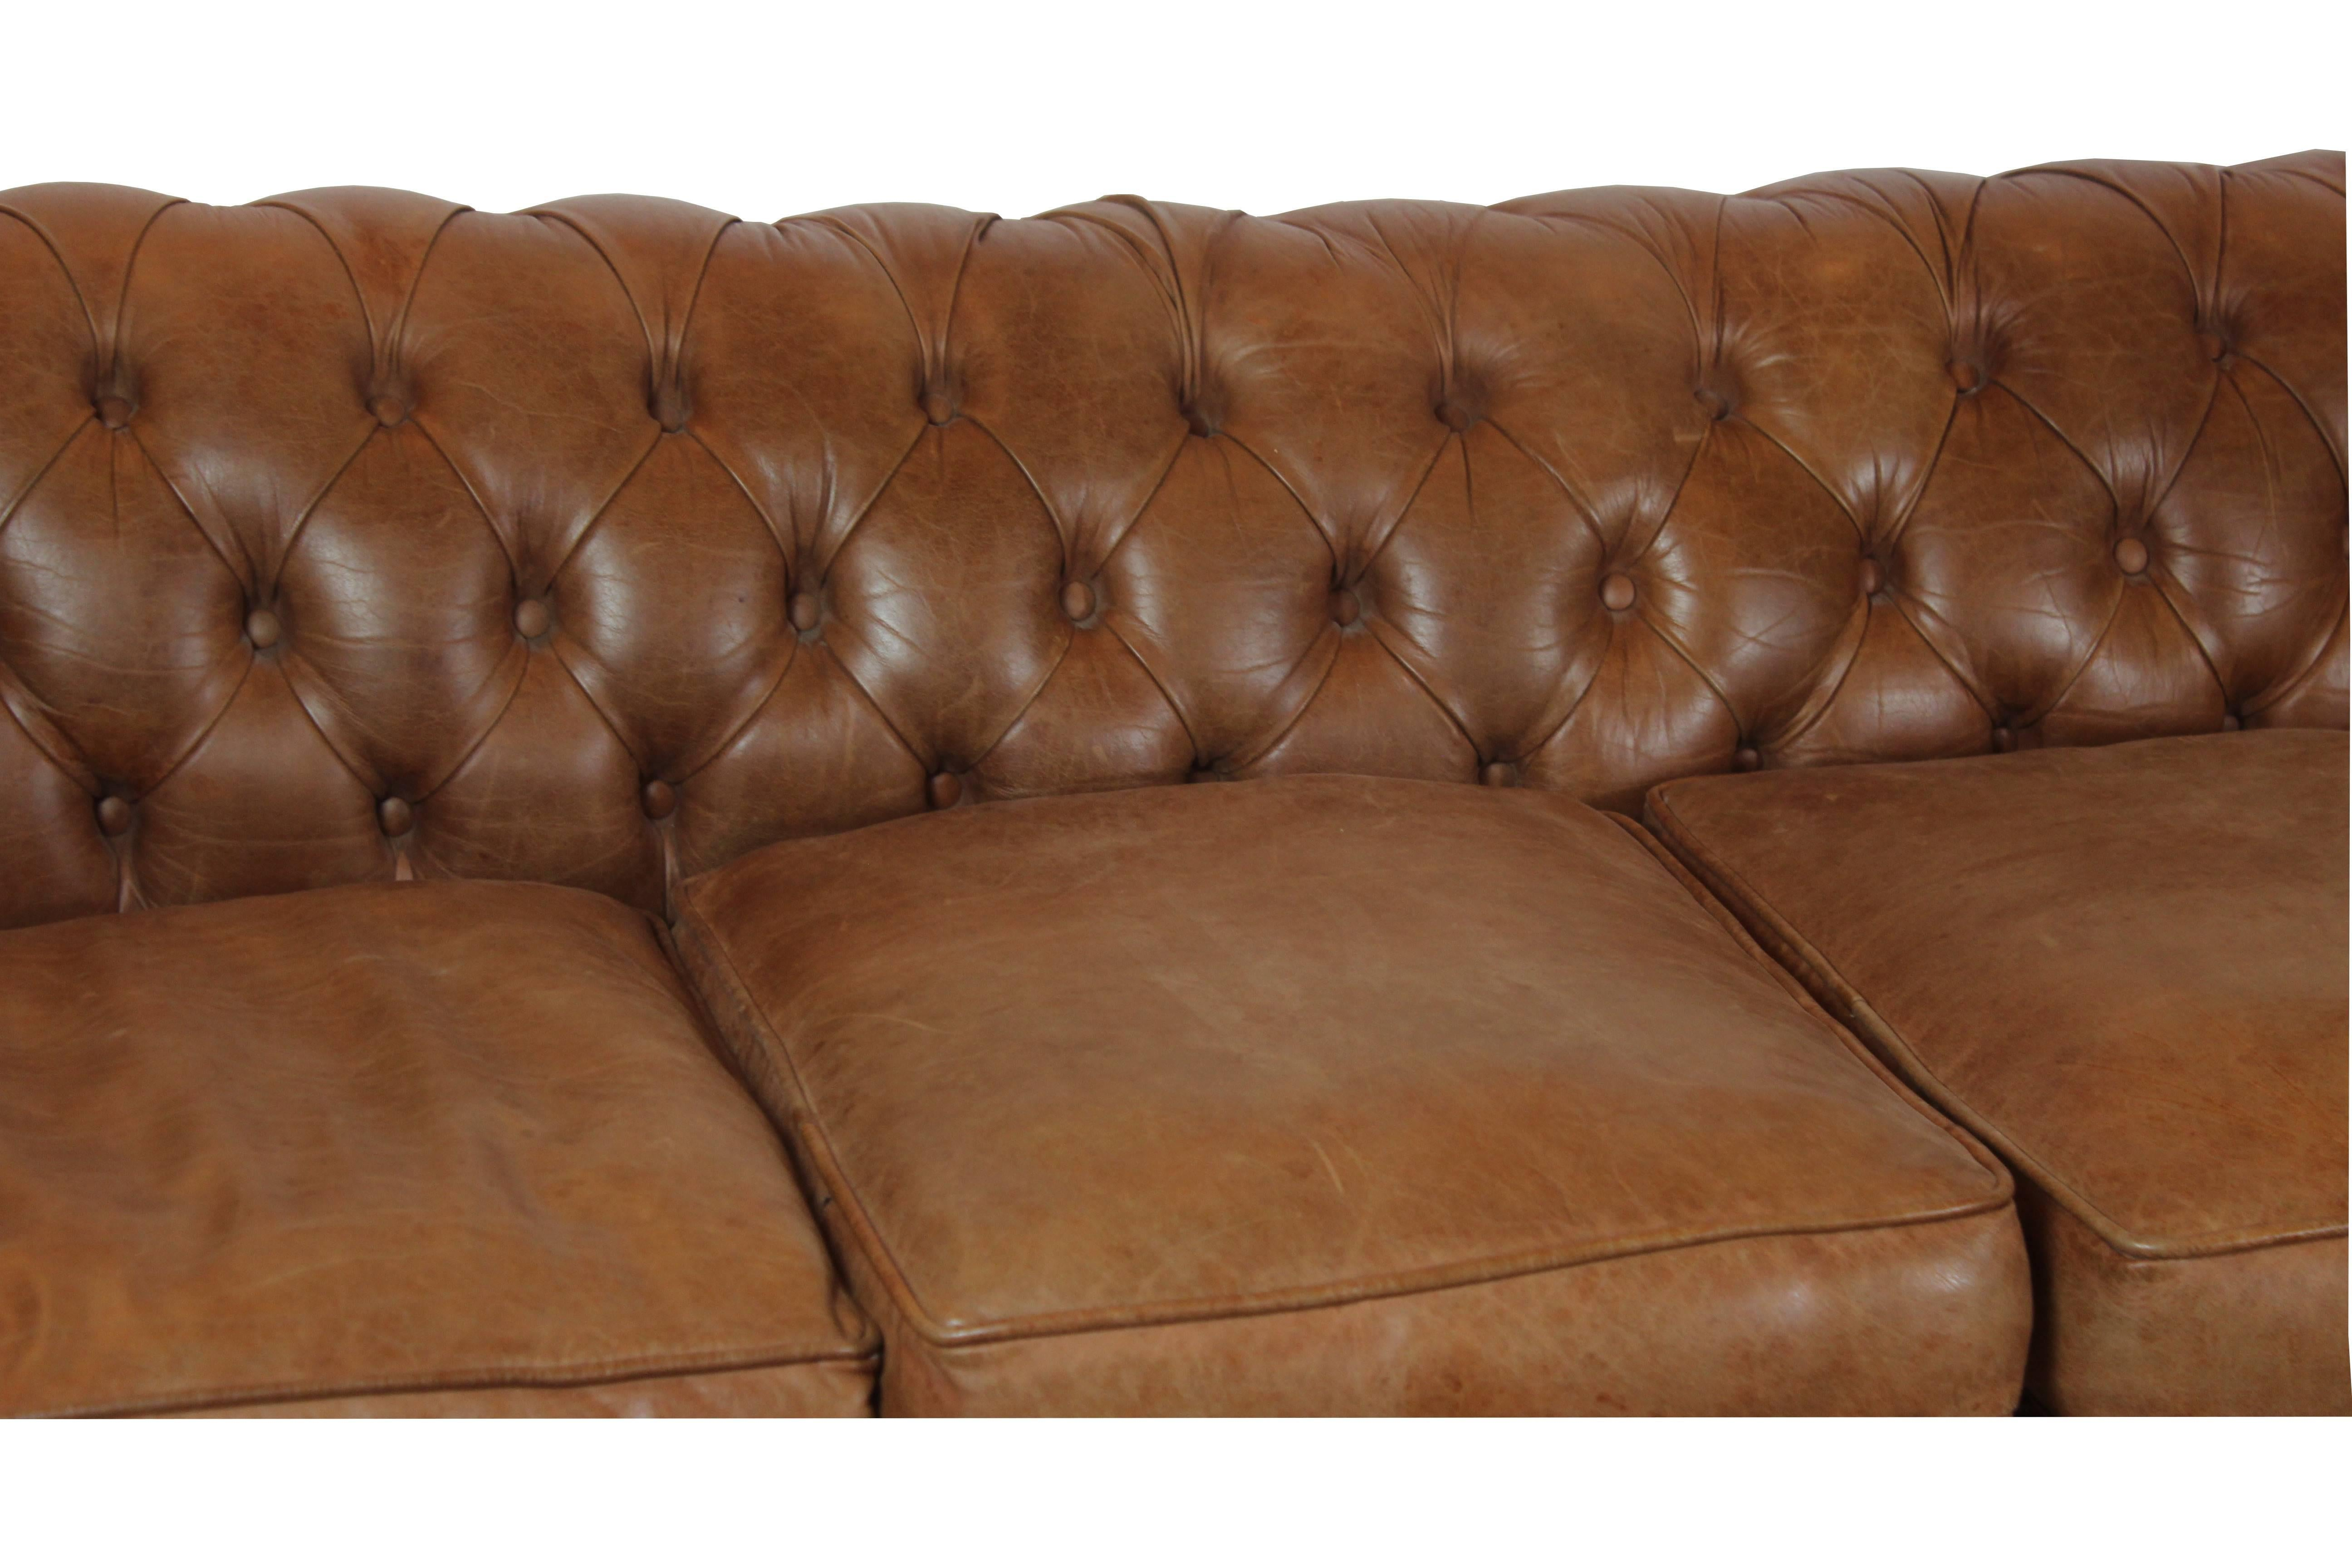 Chesterfield Style Sofa Wonderful Quality Made With Soft Leather, Four  Loose Cushions And Four Ball